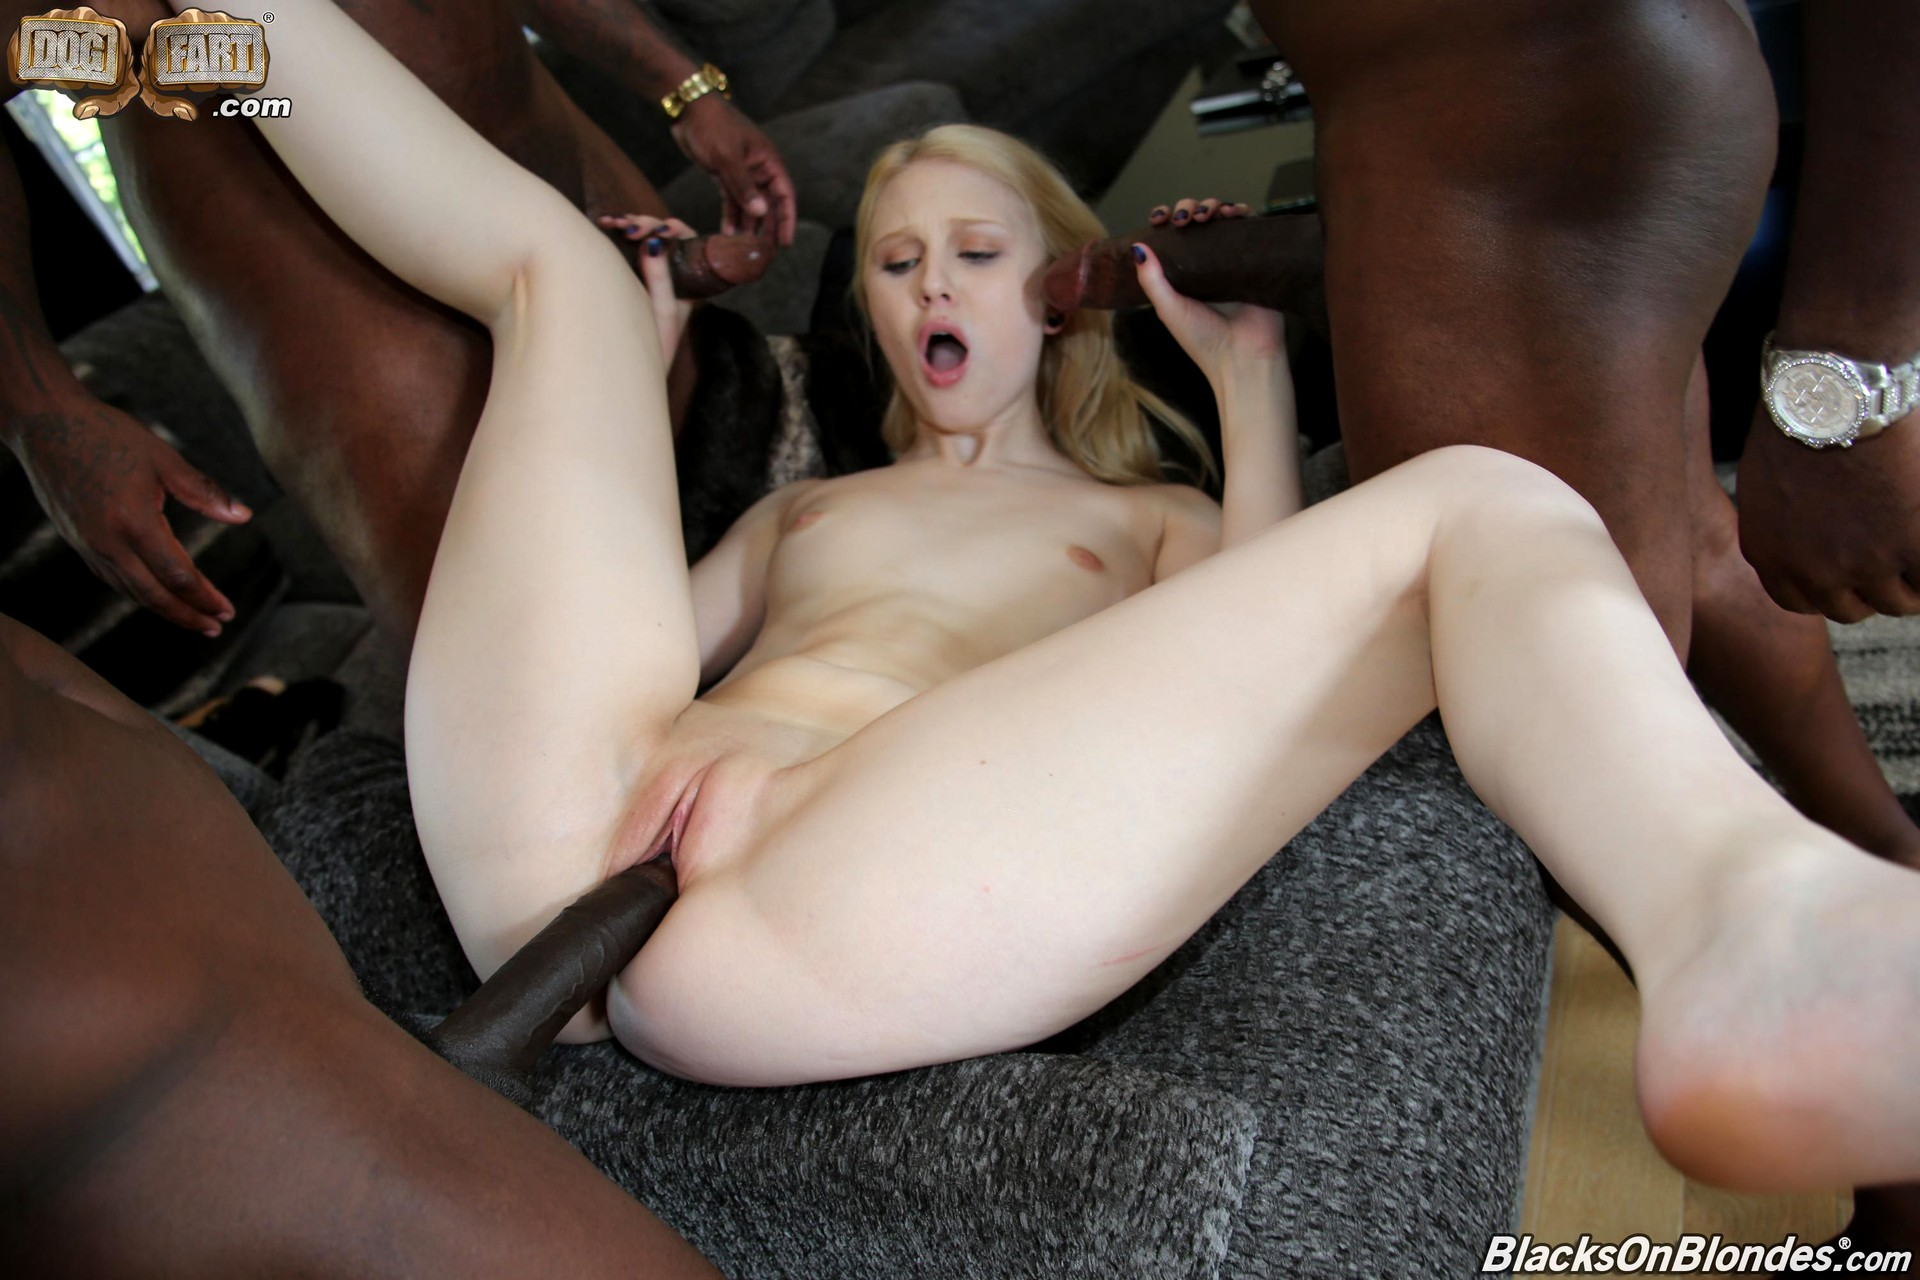 Blacks on blondes porn tube-9726